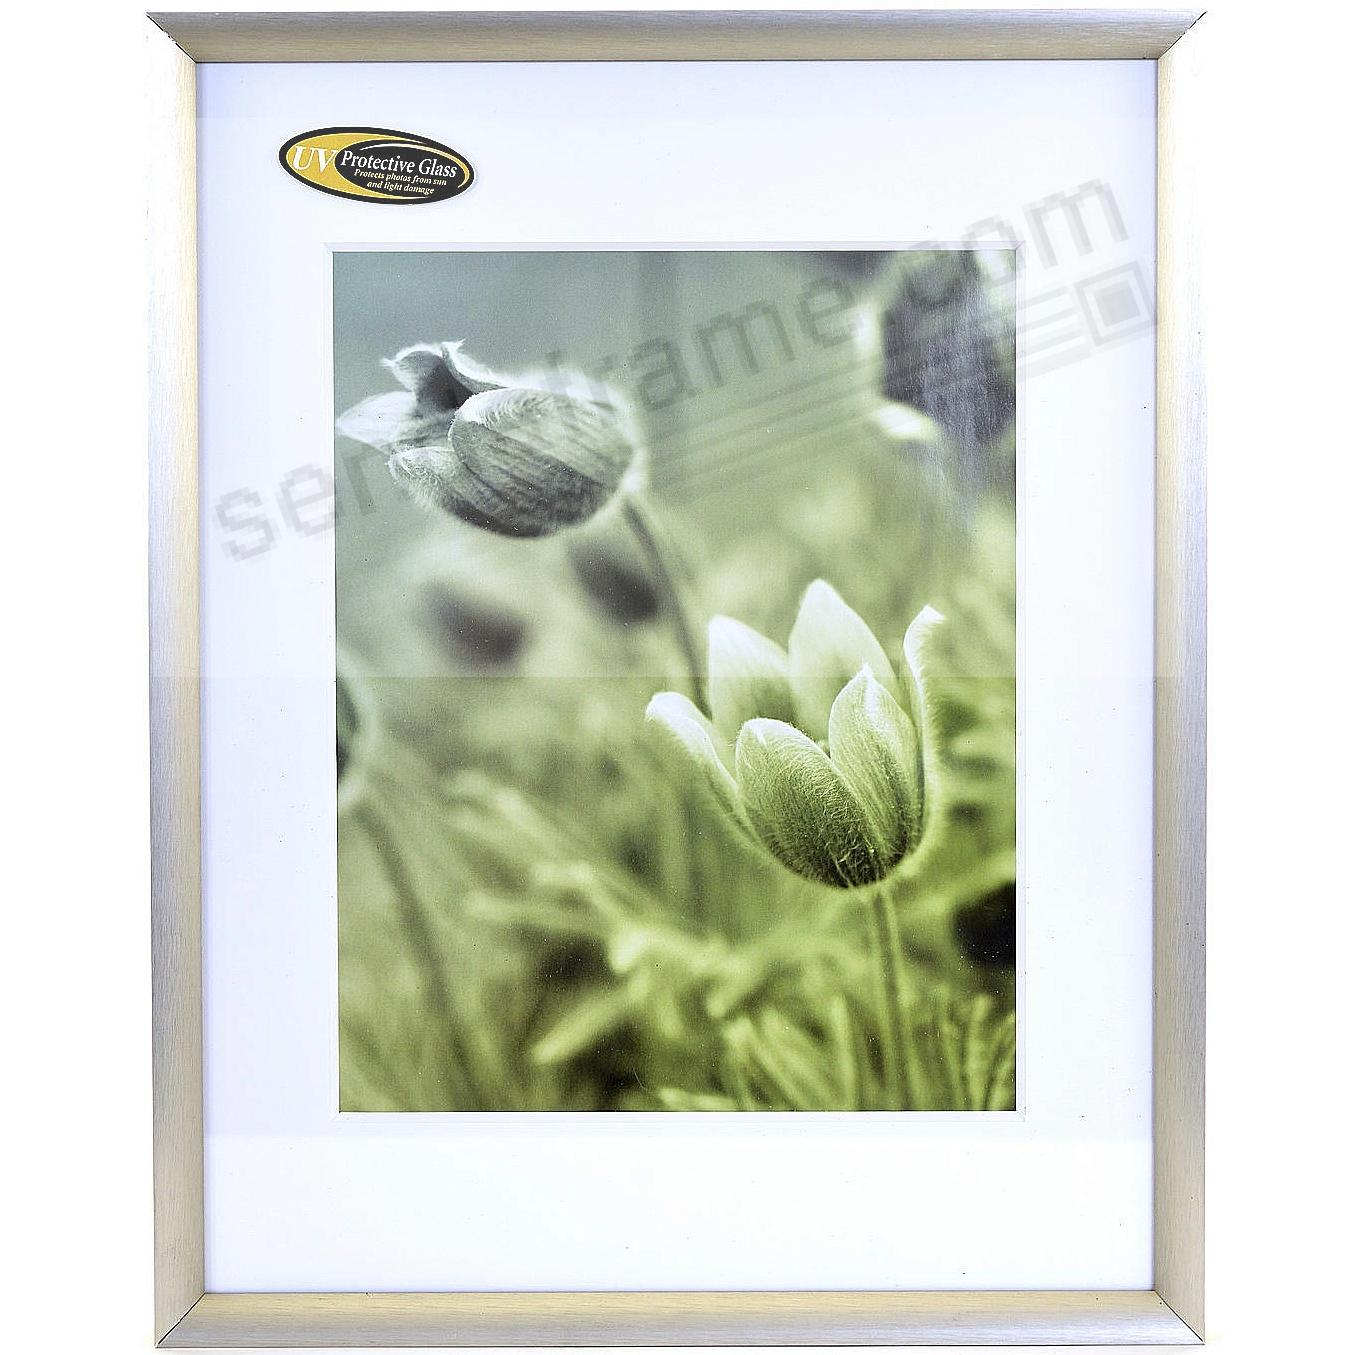 Satin German Silver COSMOPOLITAN matted metallic frame 8x10/5x7 from ARTCARE® by Nielsen®